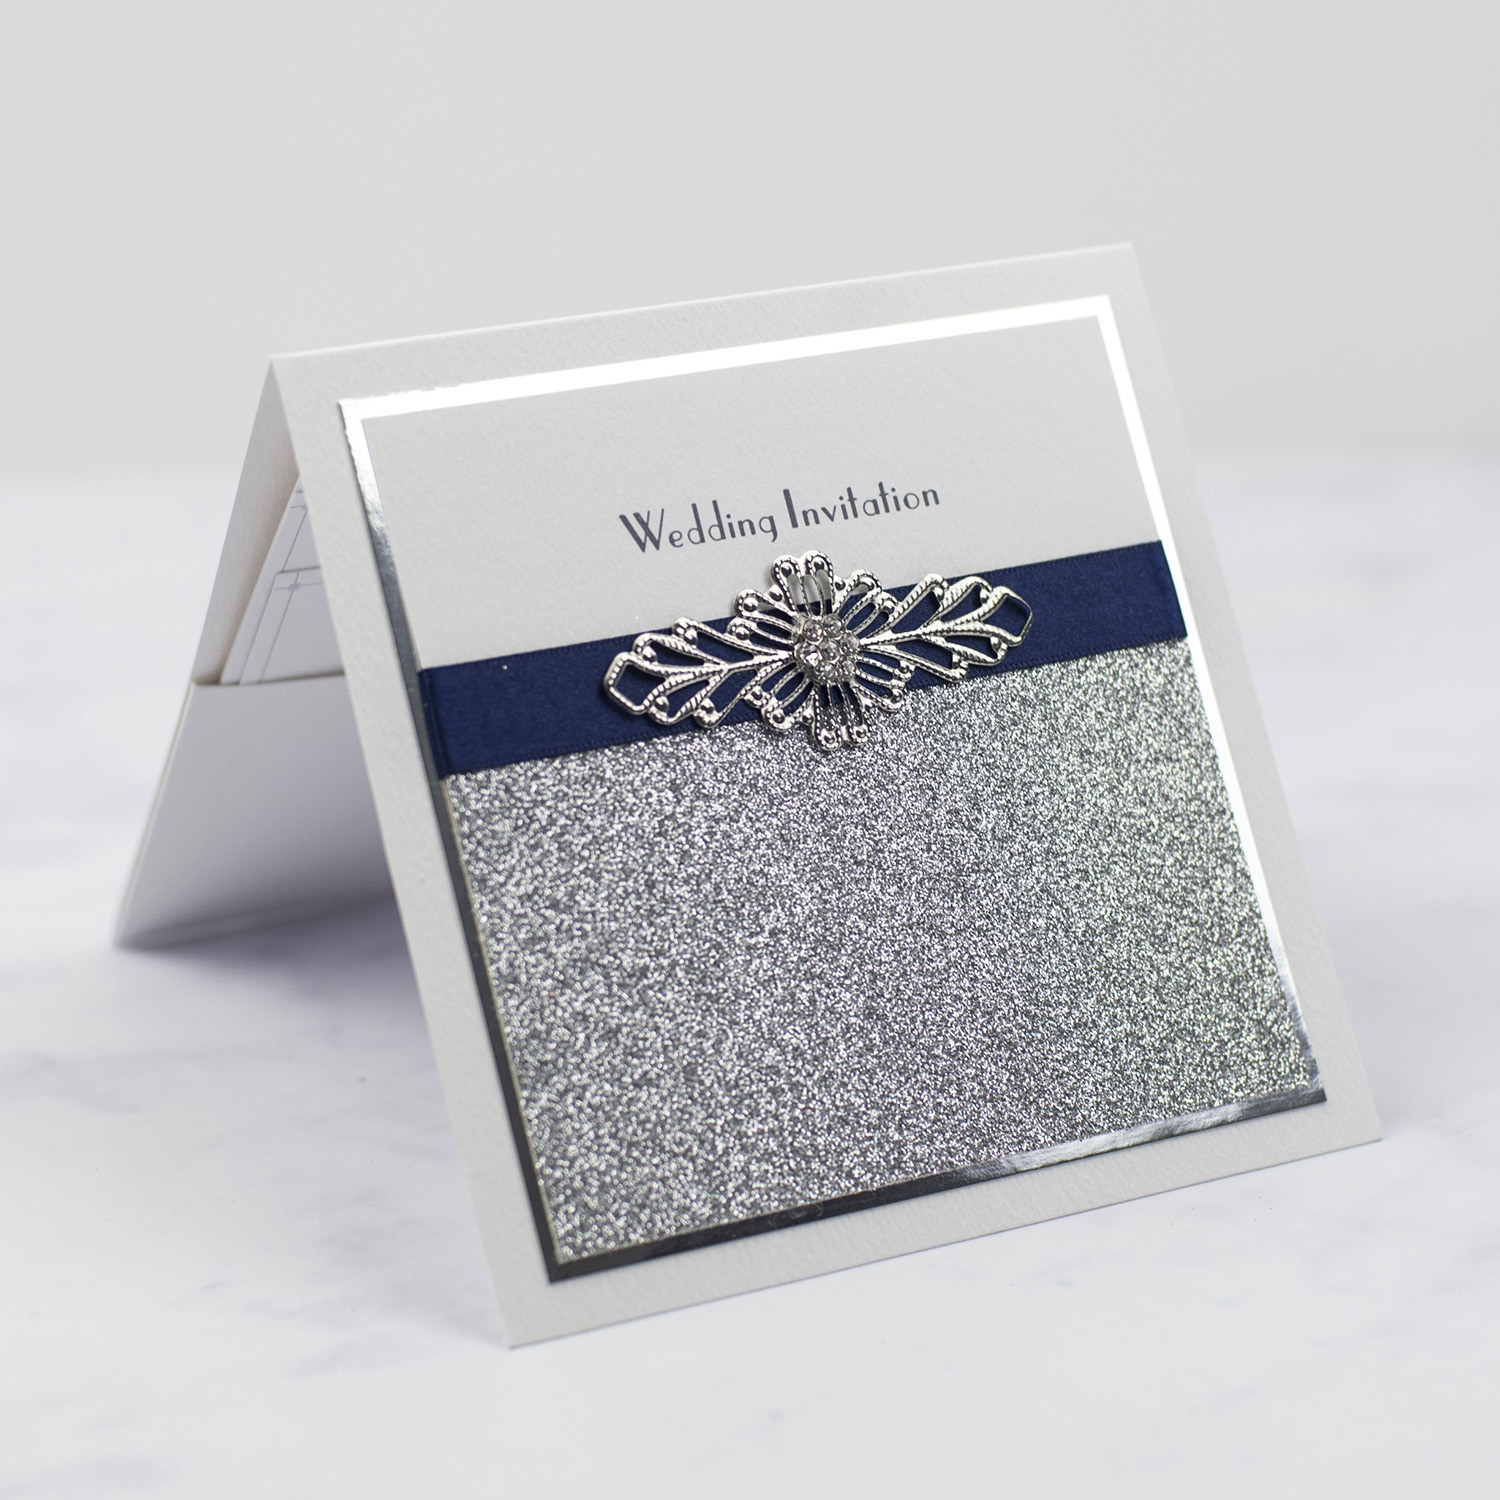 luxury wedding invitations pocketfold invitation silver glitter foil edge navy ribbon wire crystal embellishment